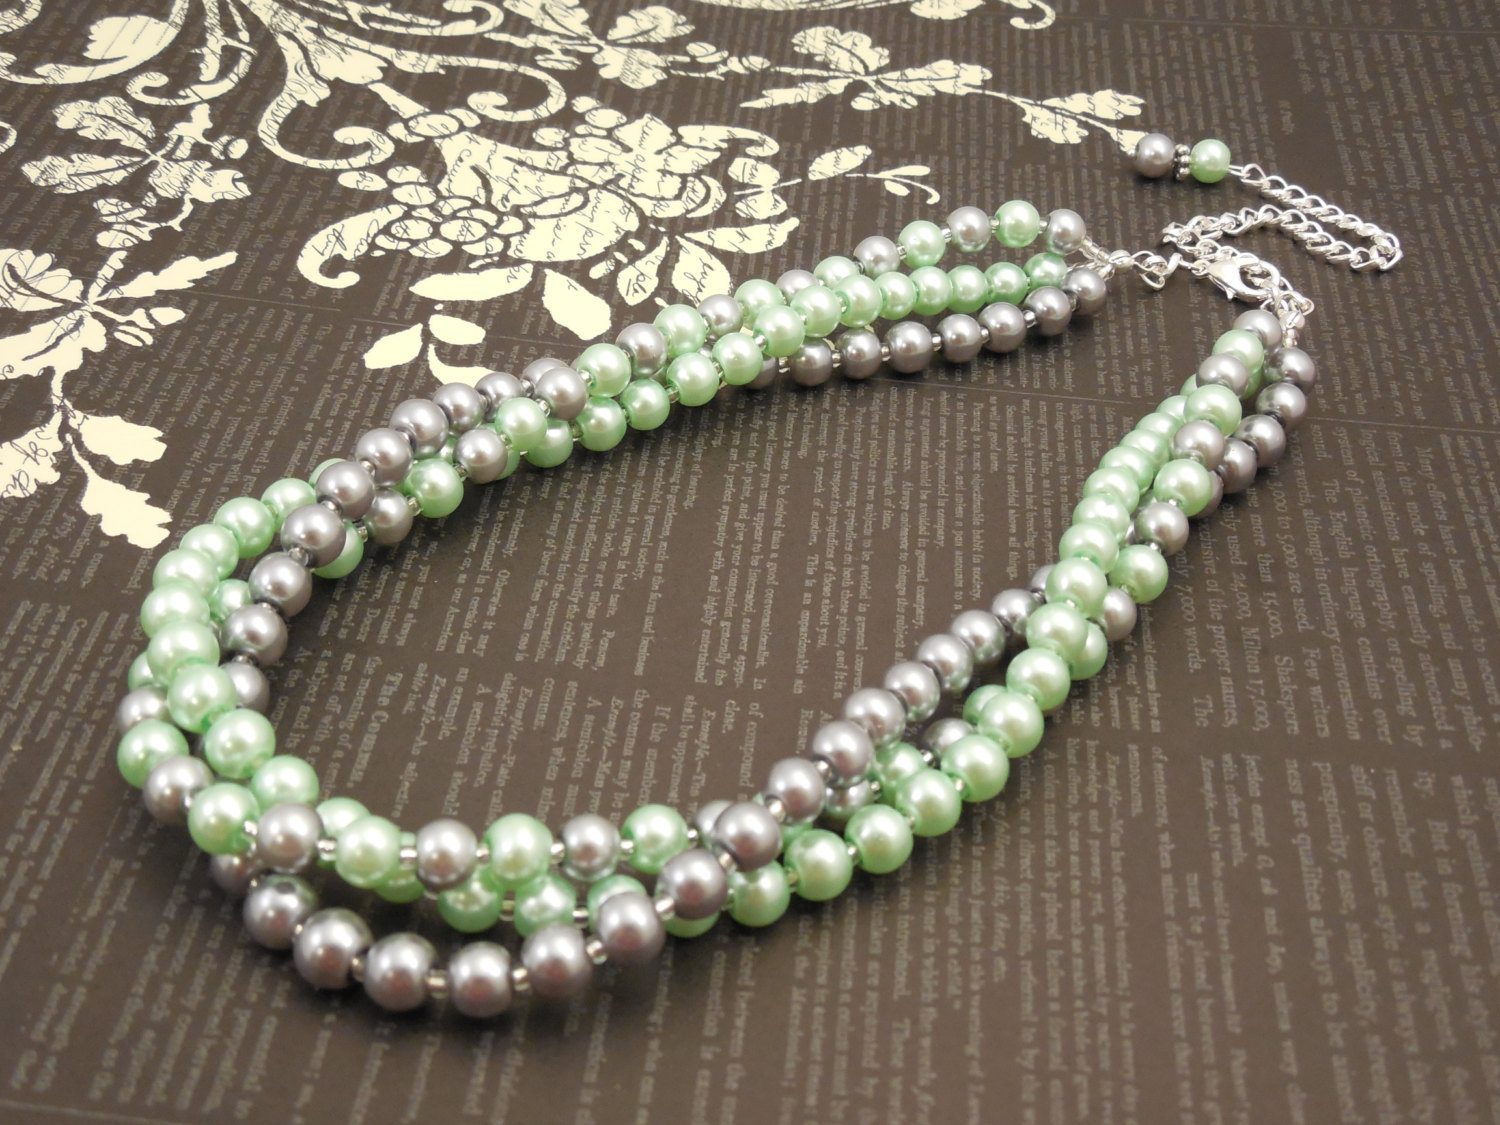 Elegant, Multi Strand Choker Style Necklace with Gray and Mint Green Glass Pearl